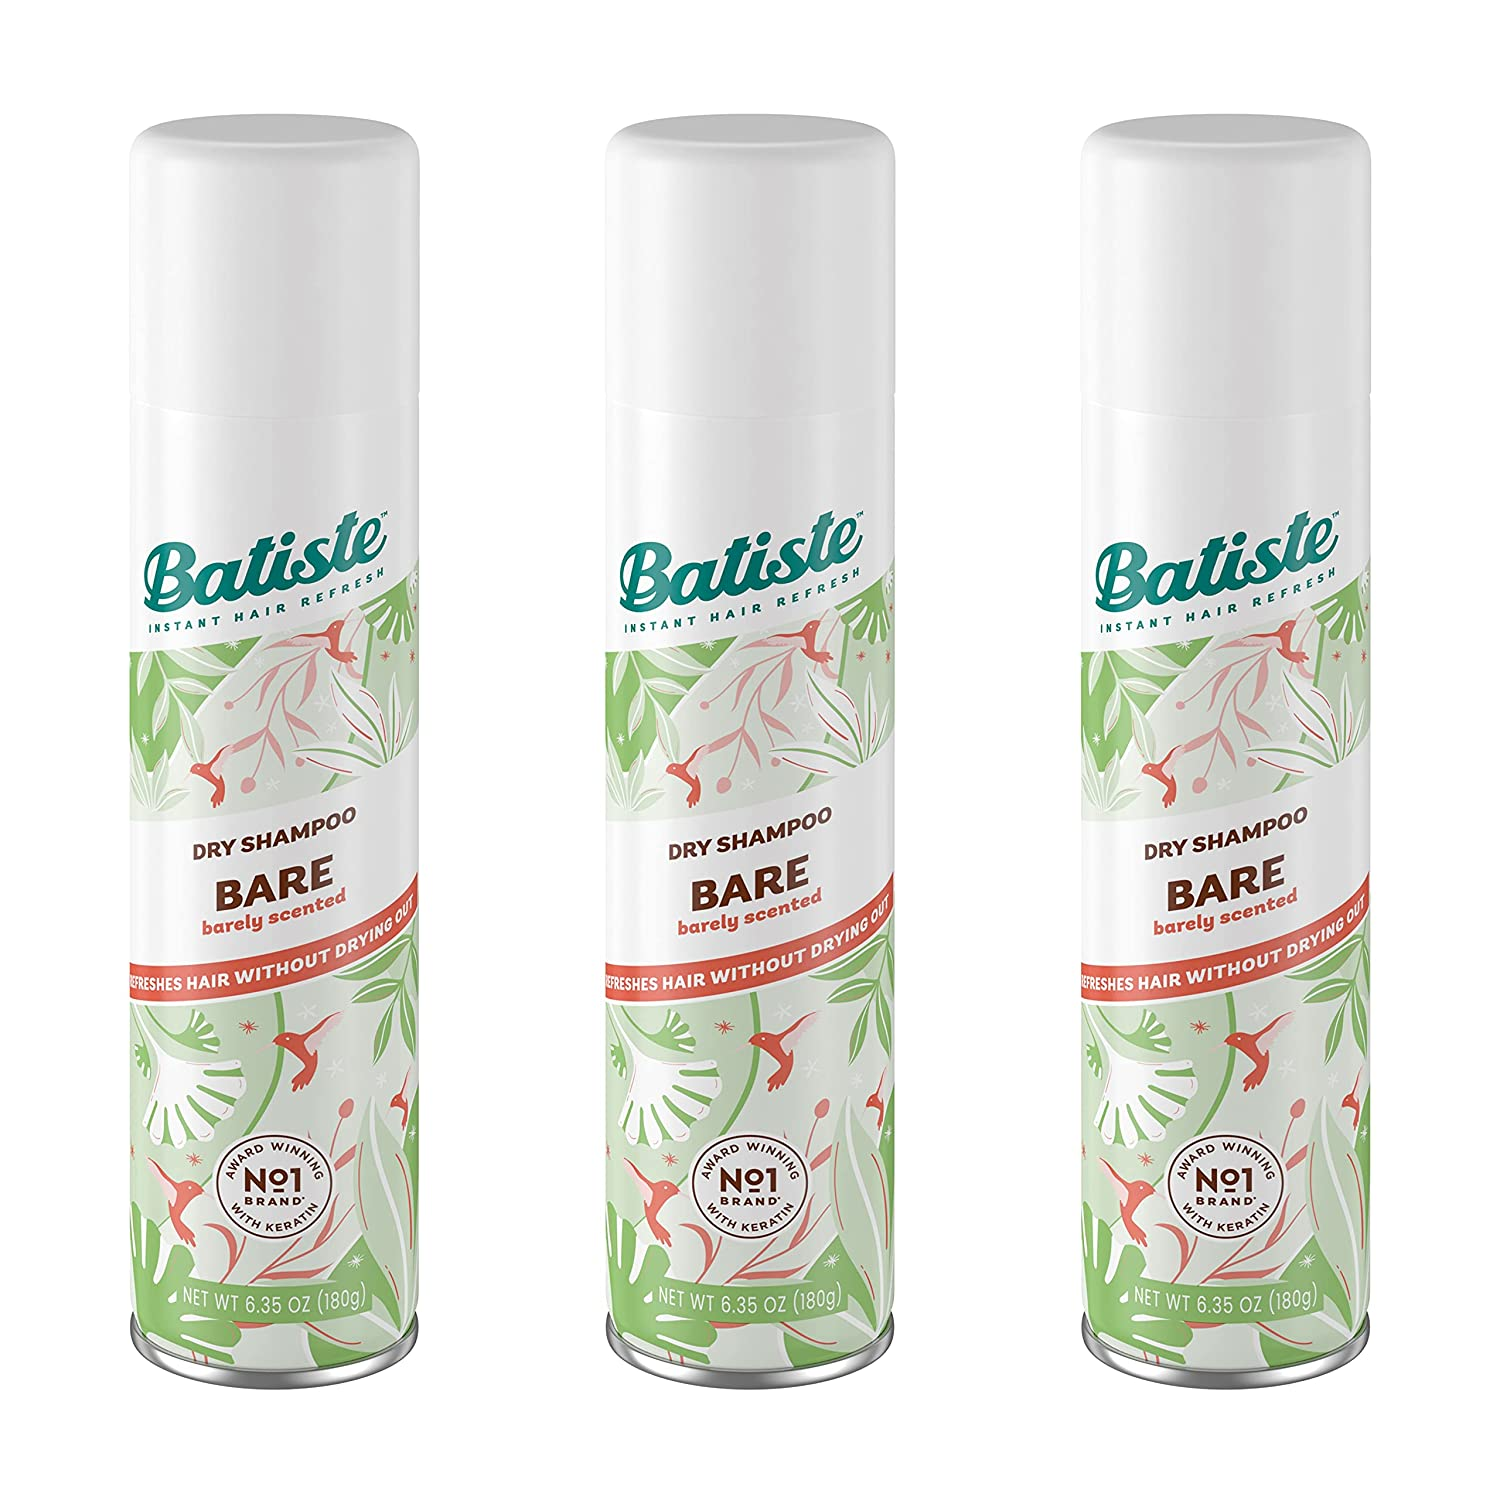 Batiste Dry Shampoo 10.10 Ounce 3 of Bare half New sales Pack